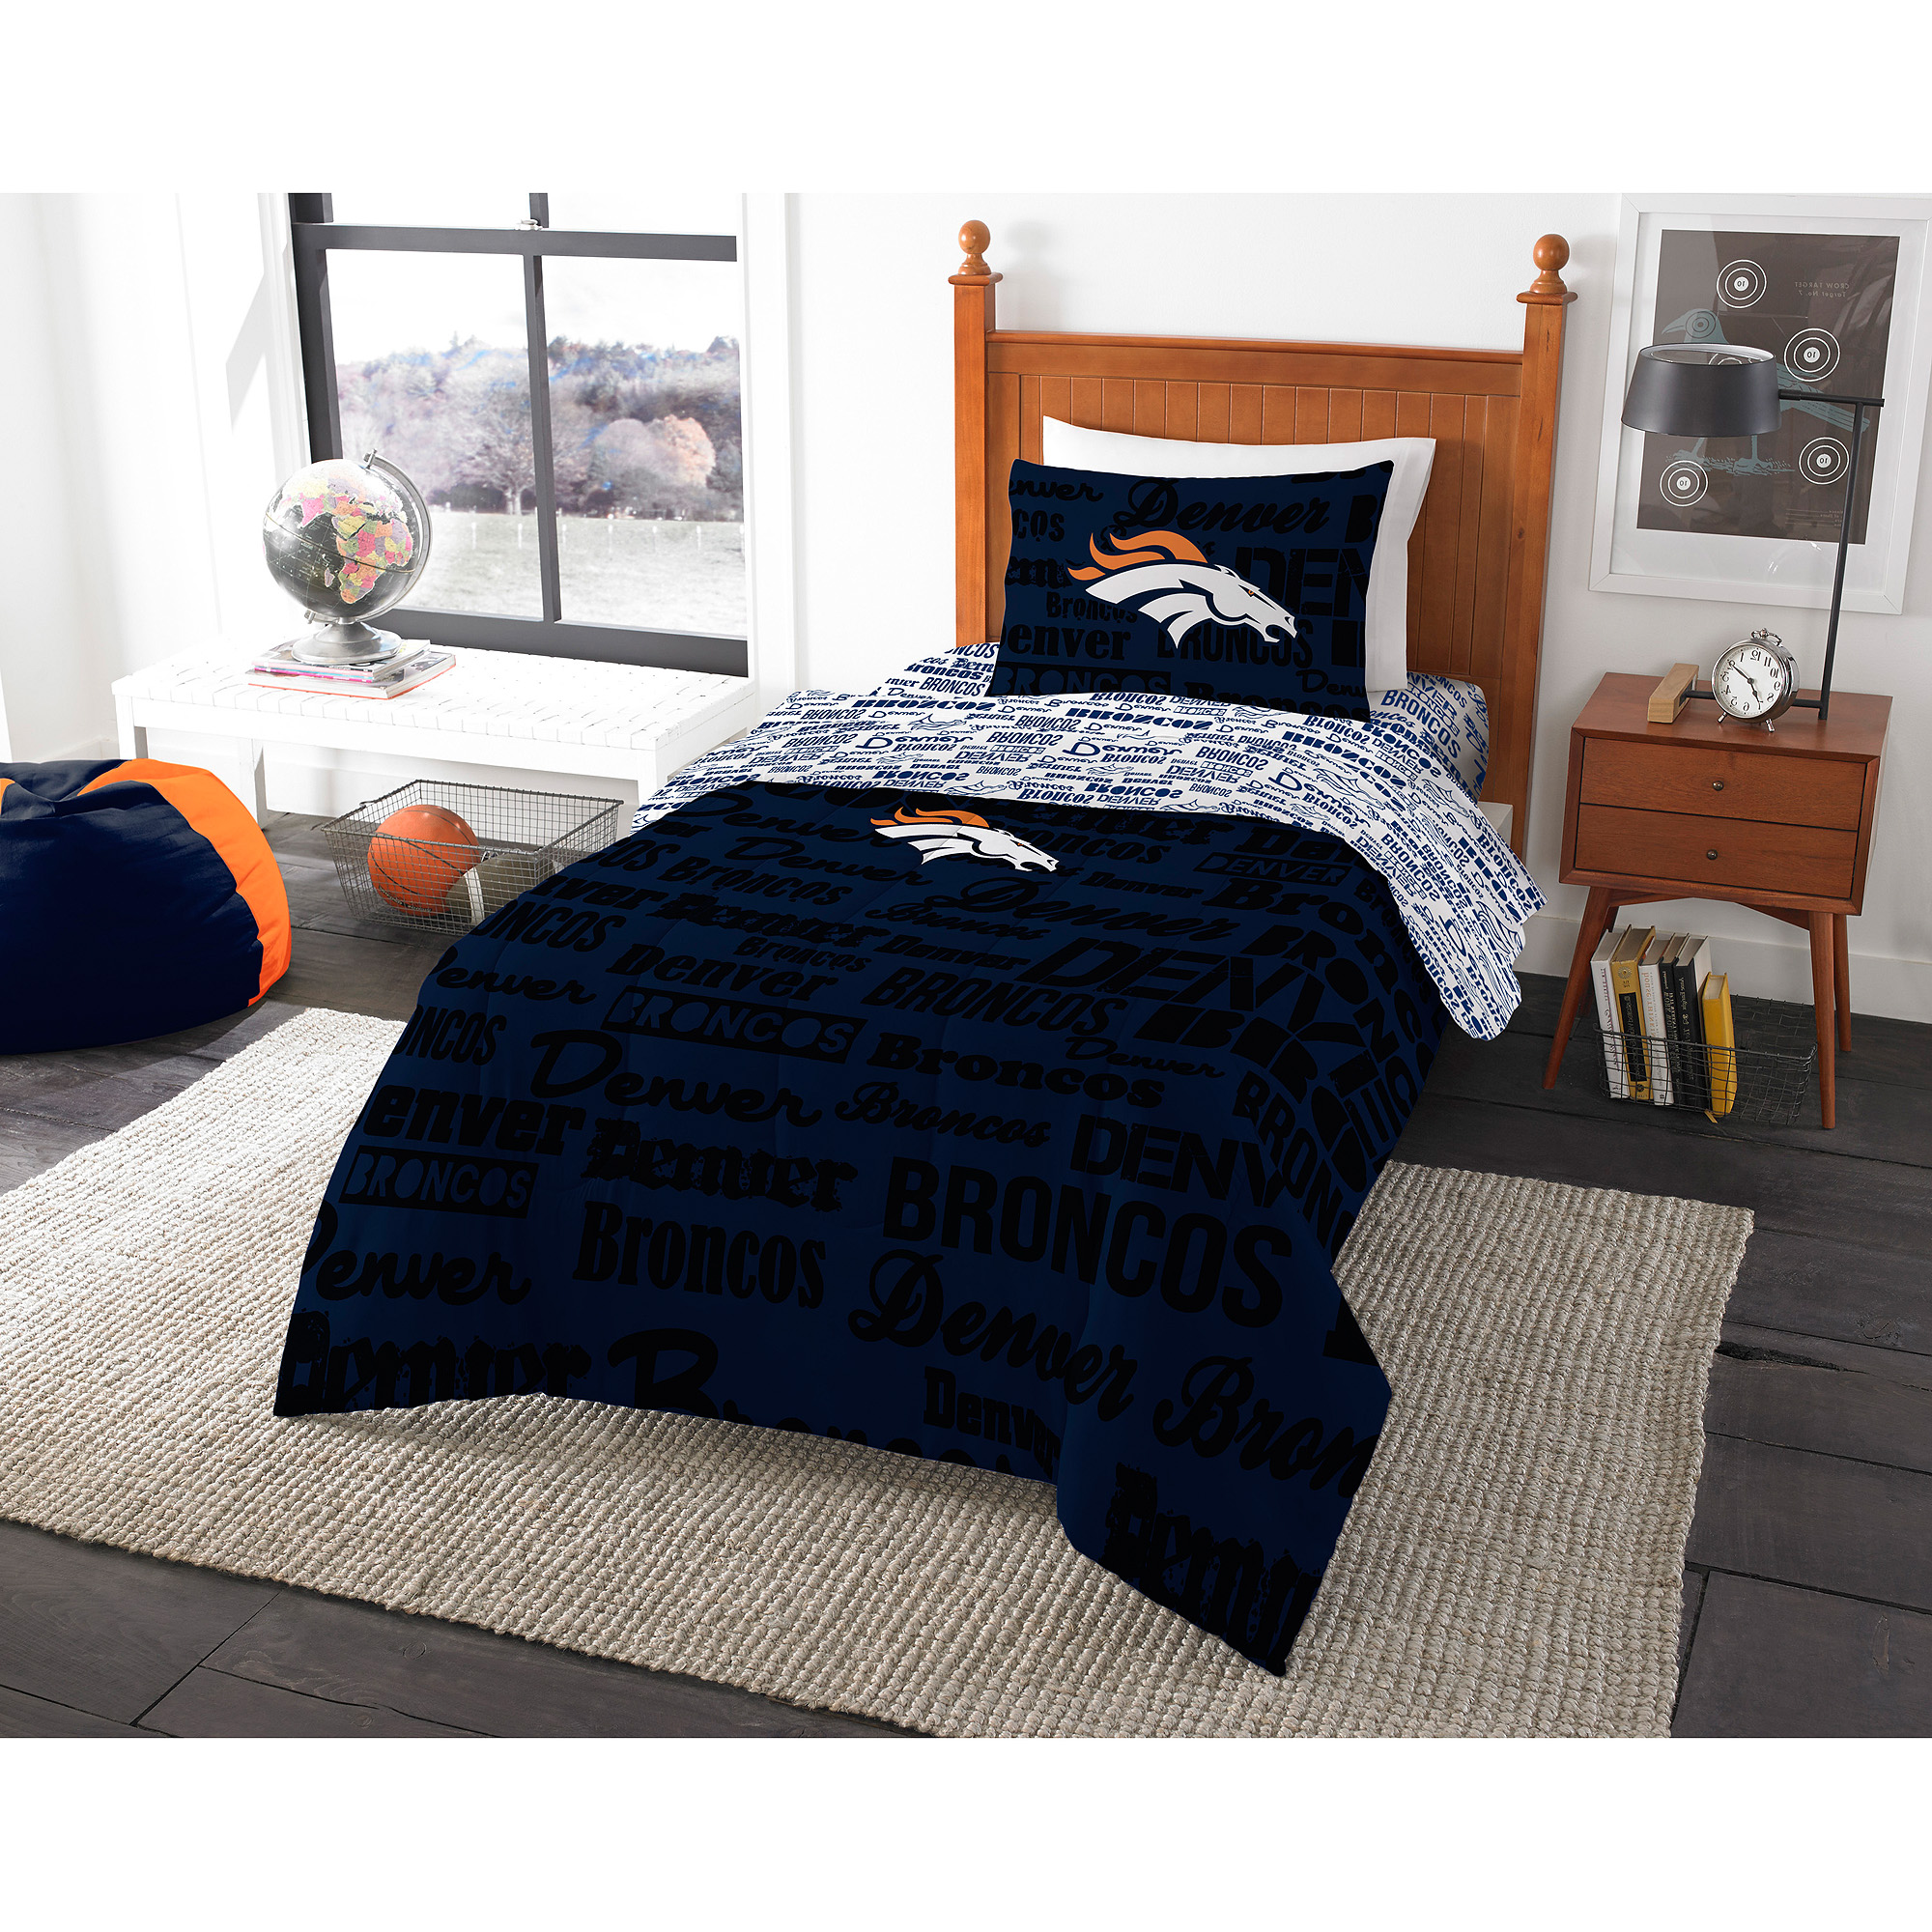 NFL Denver Broncos Bed in a Bag Complete Bedding Set - Walmart.com